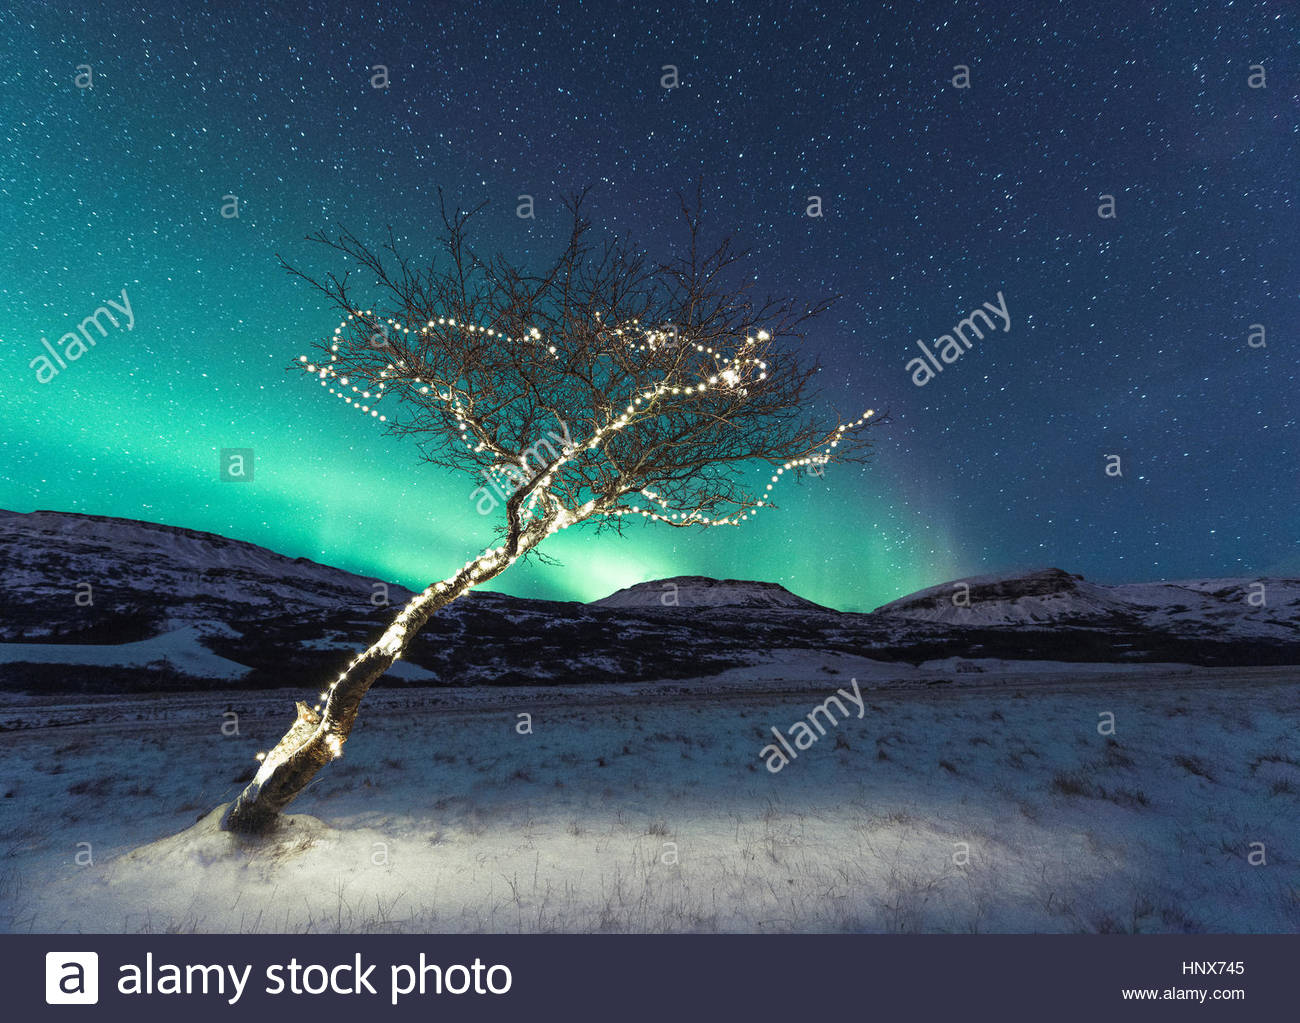 Tree with lights, Aurora Borealis in background, Hvalfjordur, Iceland - Stock Image